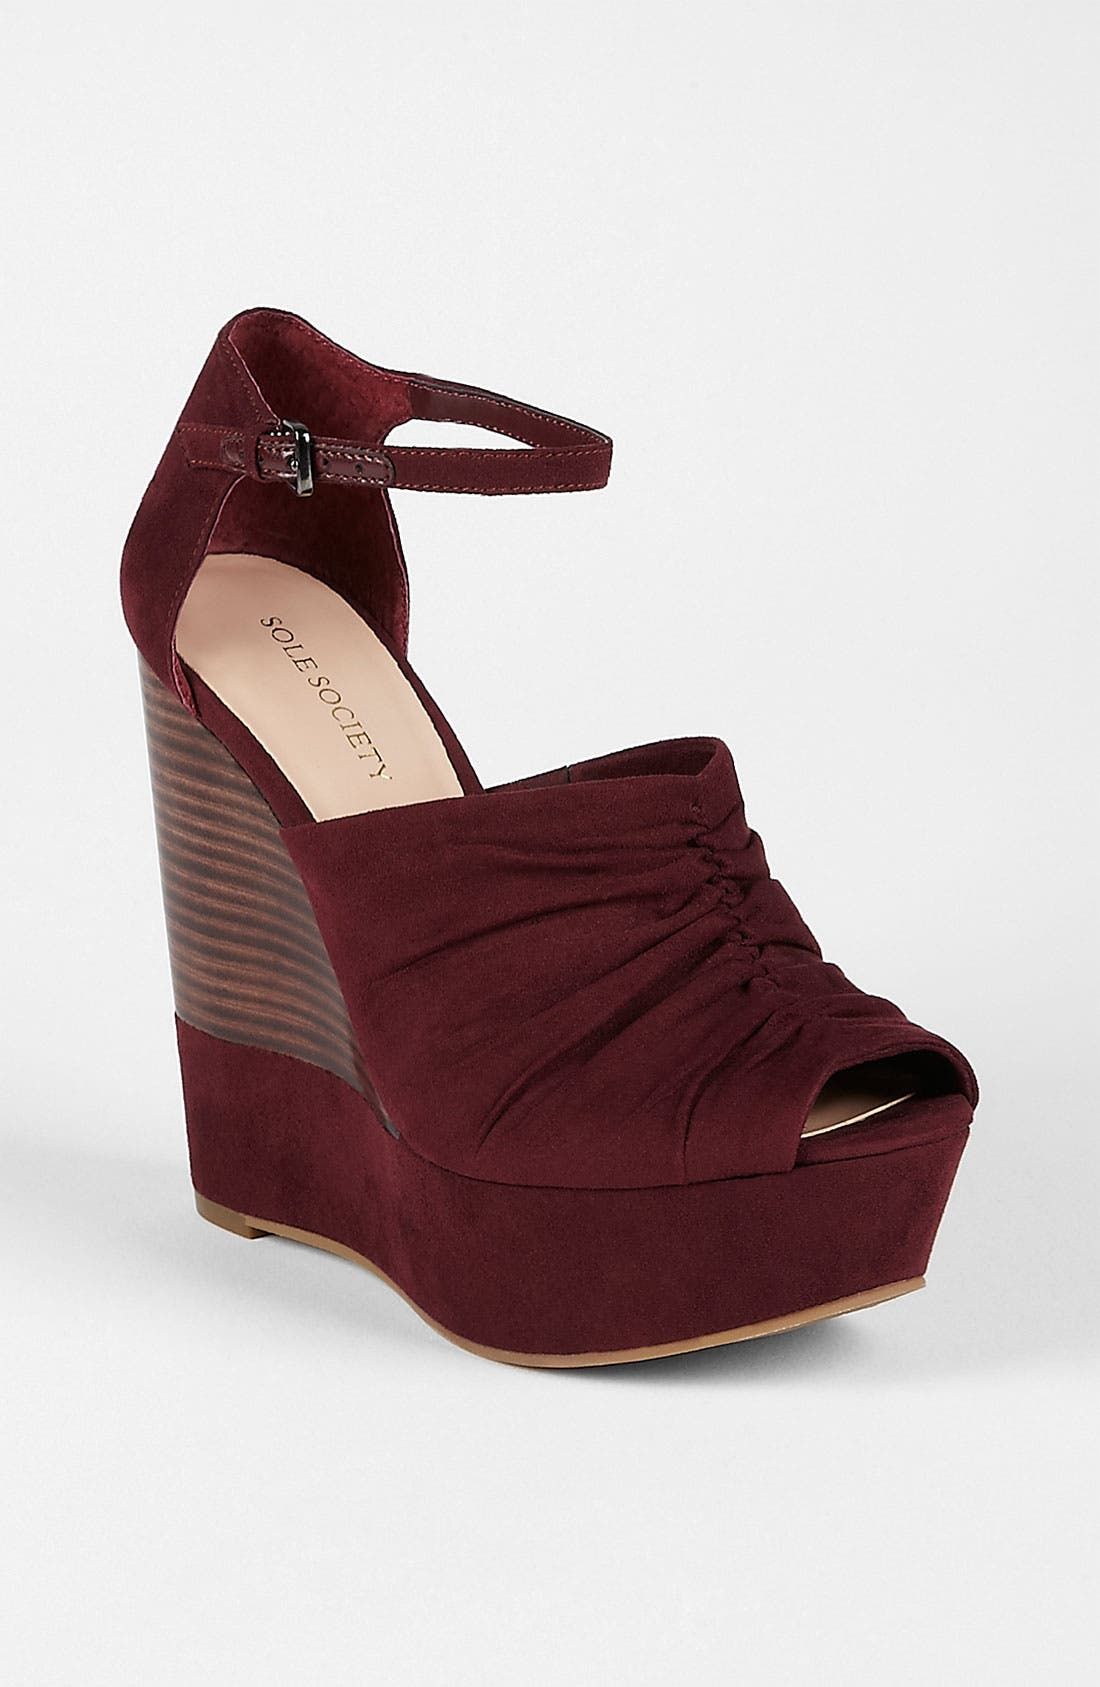 Main Image - Sole Society 'Becca' Wedge Sandal (Online Exclusive)